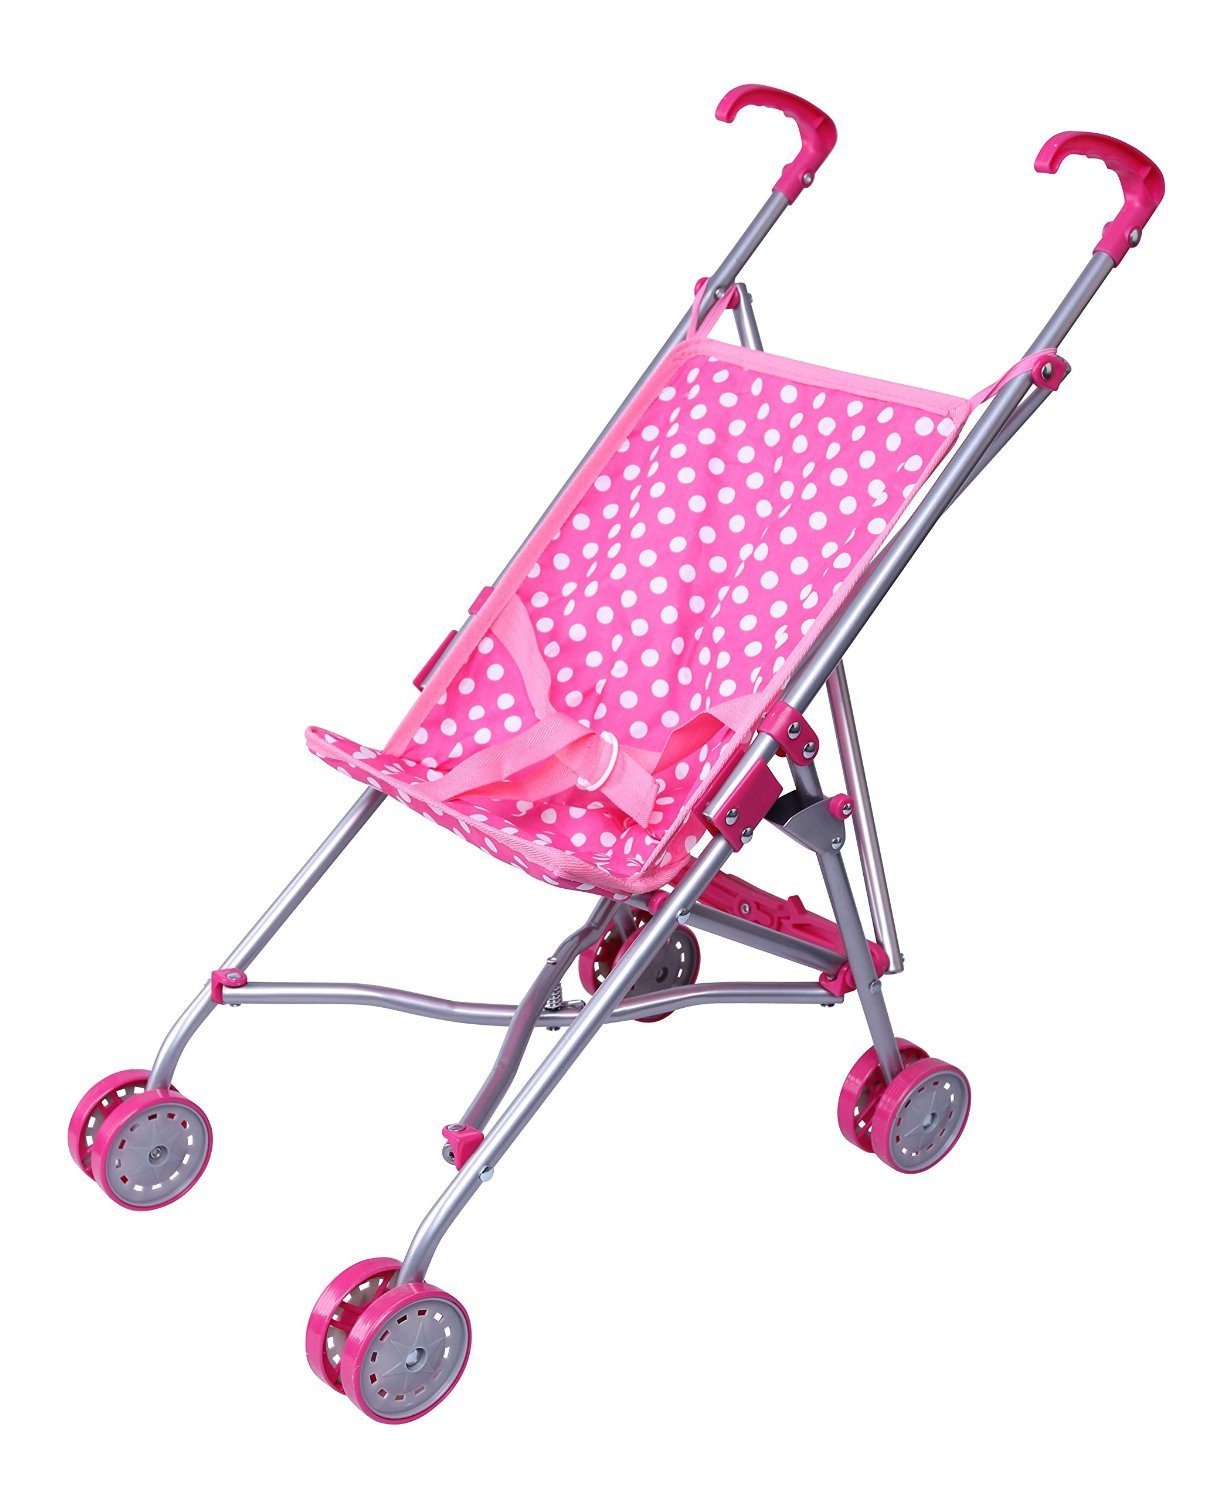 Precious toys Pink and White Polka Dots Umbrella Doll Stroller with Hot Pink Handles and Silver Frame - 0128B Homeco PT0128B